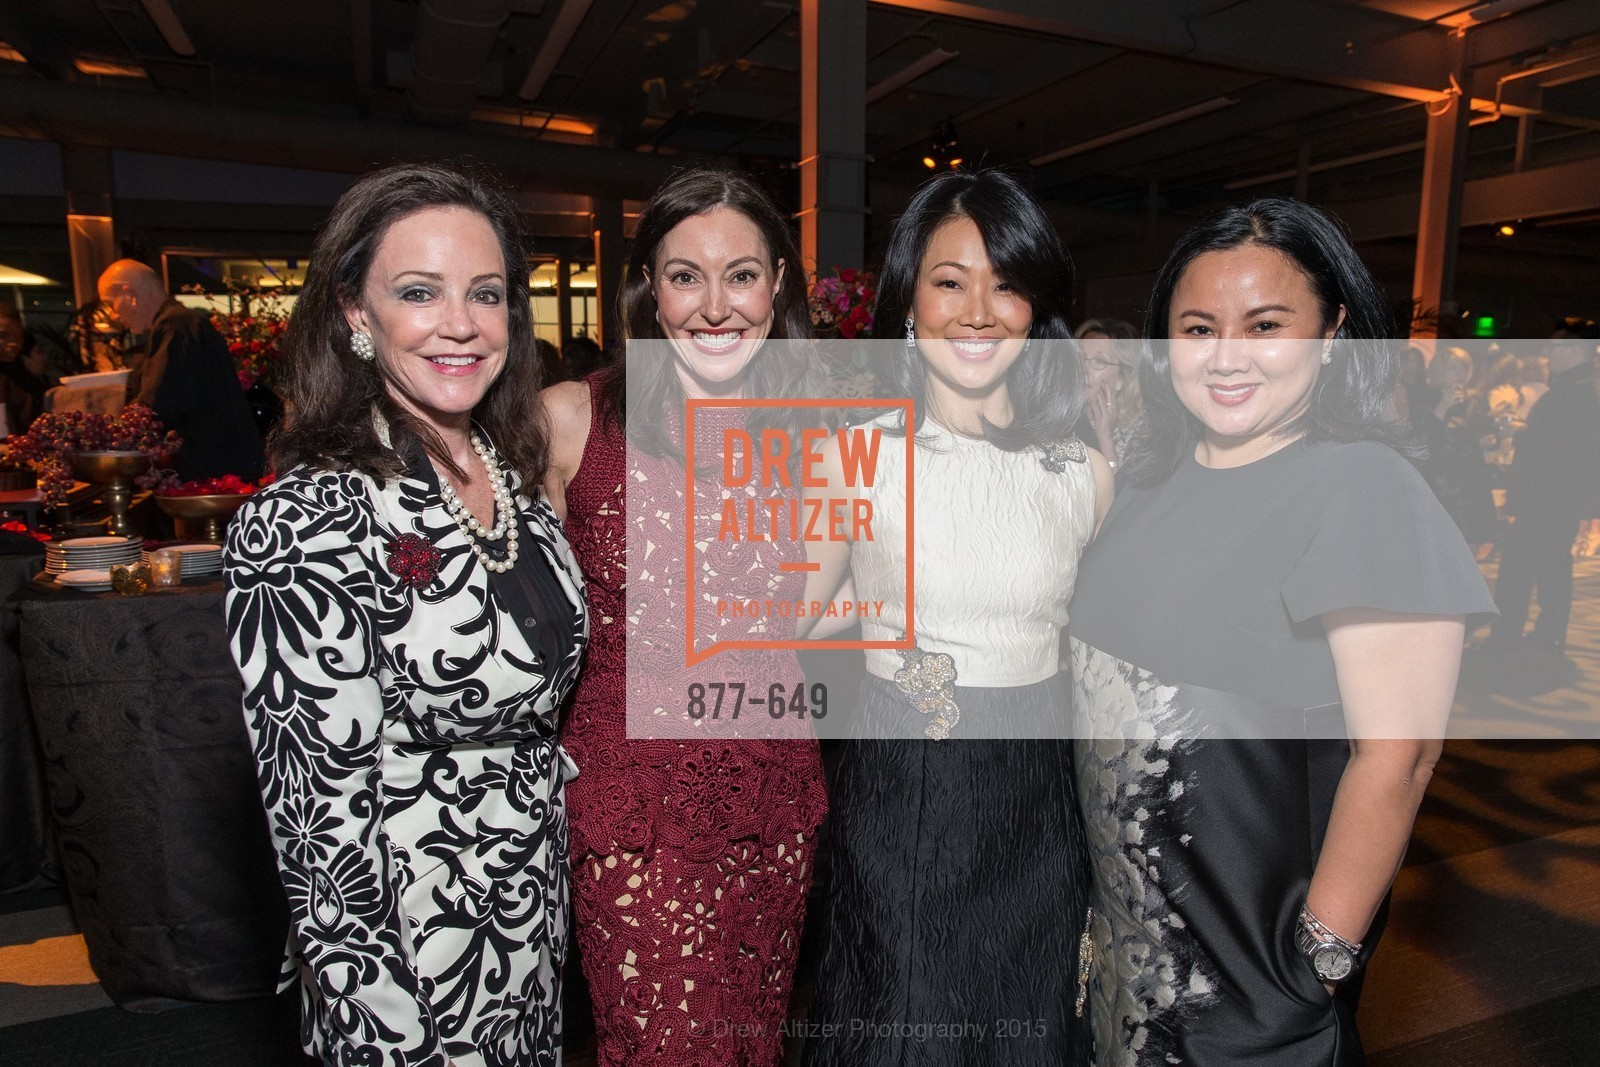 Gail DeMartini, Marybeth Lamotte, Huifen Chan, Jamie Wong, Fashion Forward: An Evening with Erdem presented by SF Opera Guild and Saks Fifth Avenue, Pier 27. Pier 27, The Embarcadero, March 25th, 2015,Drew Altizer, Drew Altizer Photography, full-service agency, private events, San Francisco photographer, photographer california